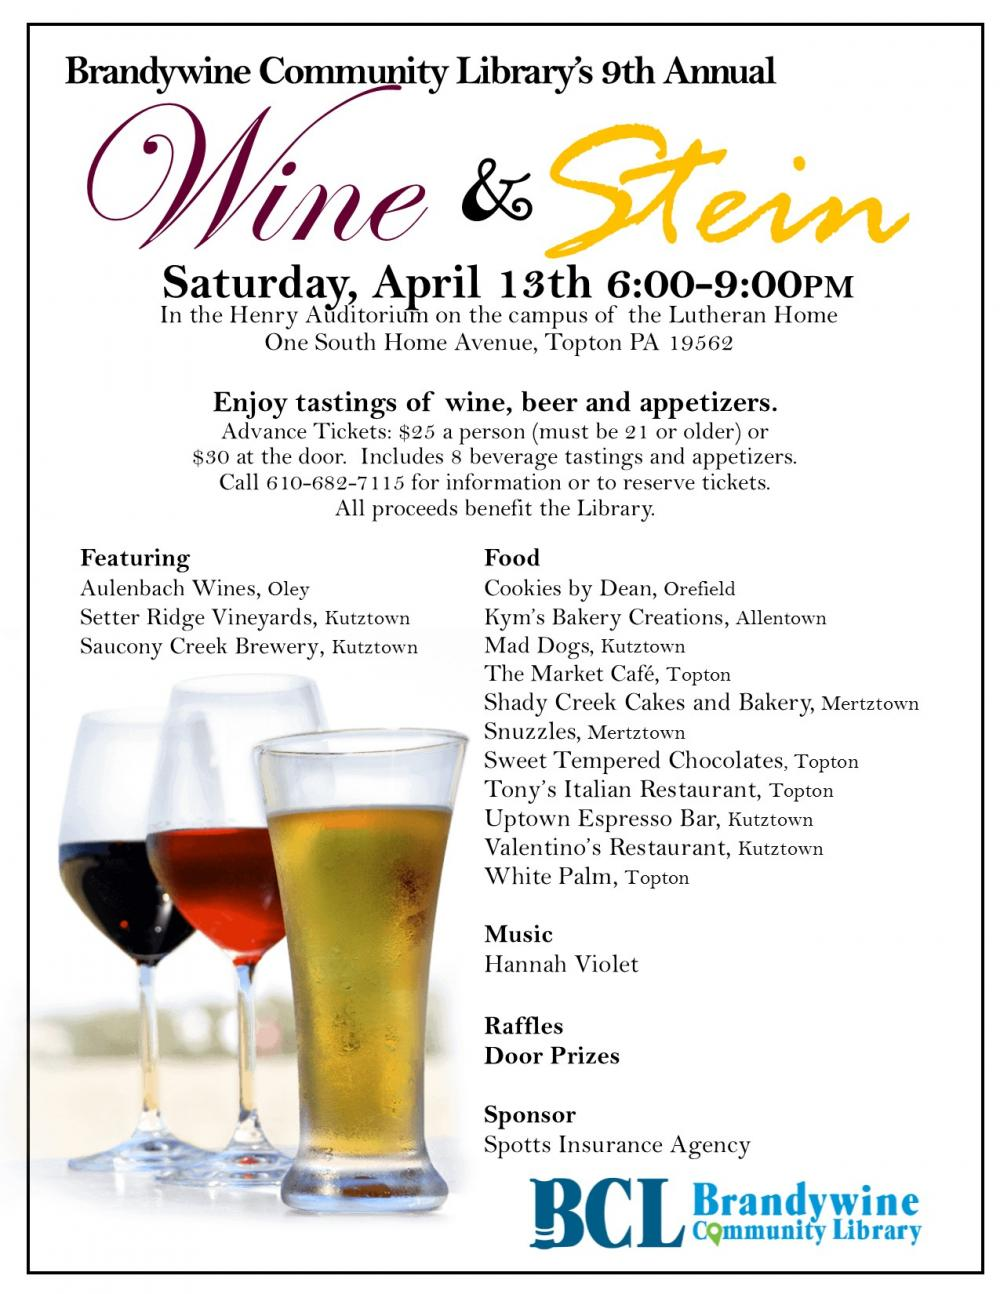 Wine & Stein fundraiser April 13th 6-9 pm